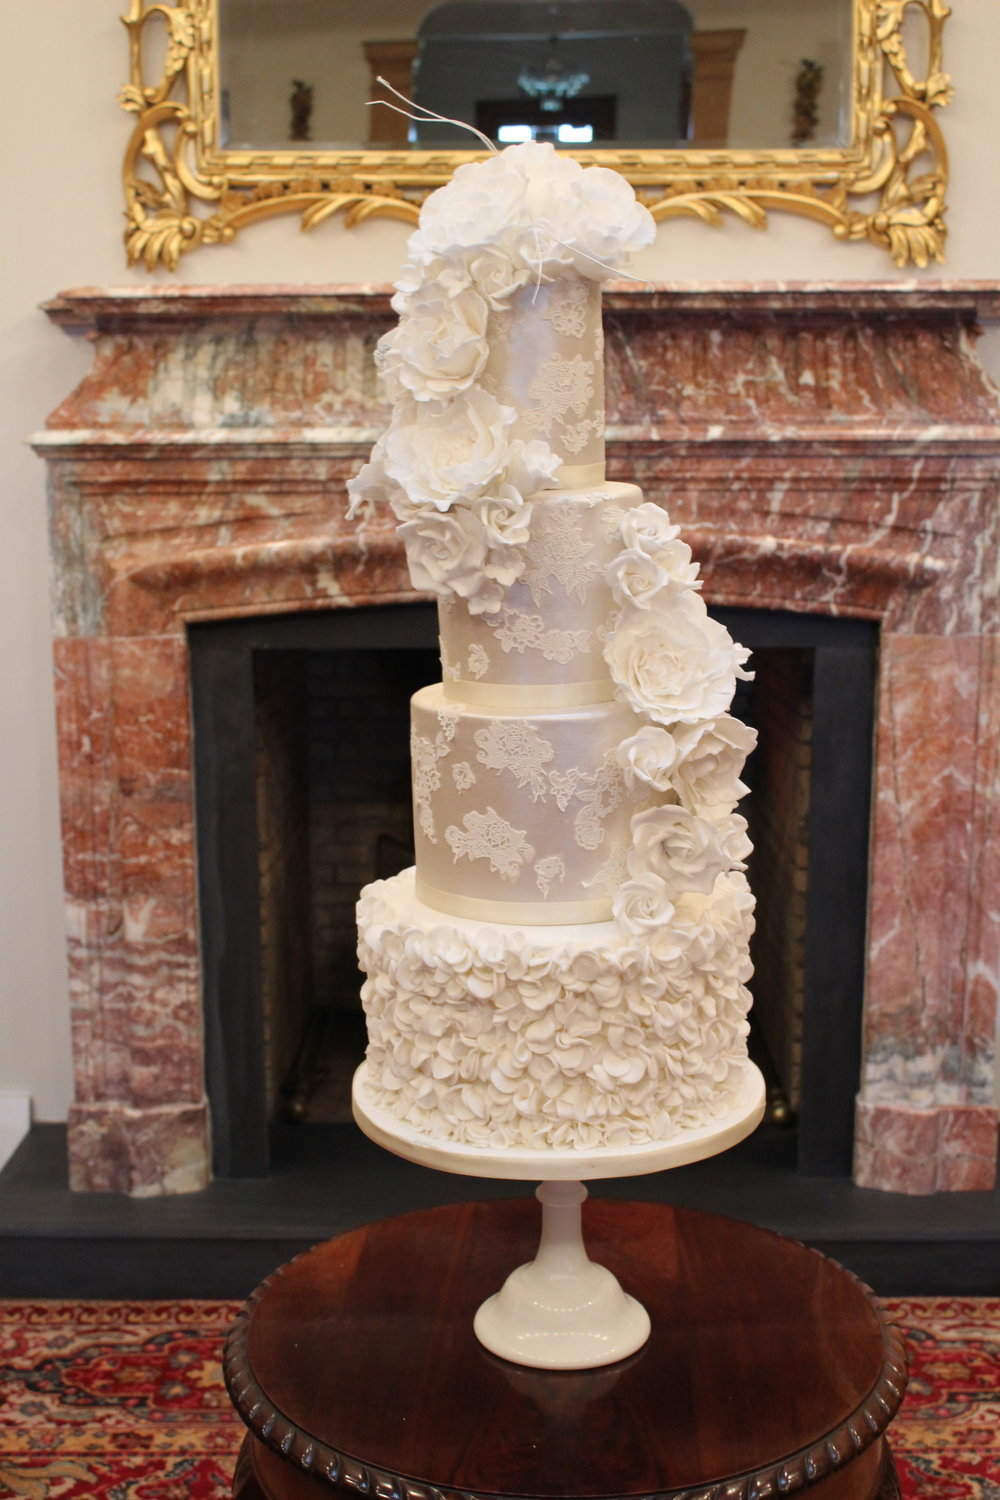 timeless design artistic wedding cakes glasgow scotland luxury high end